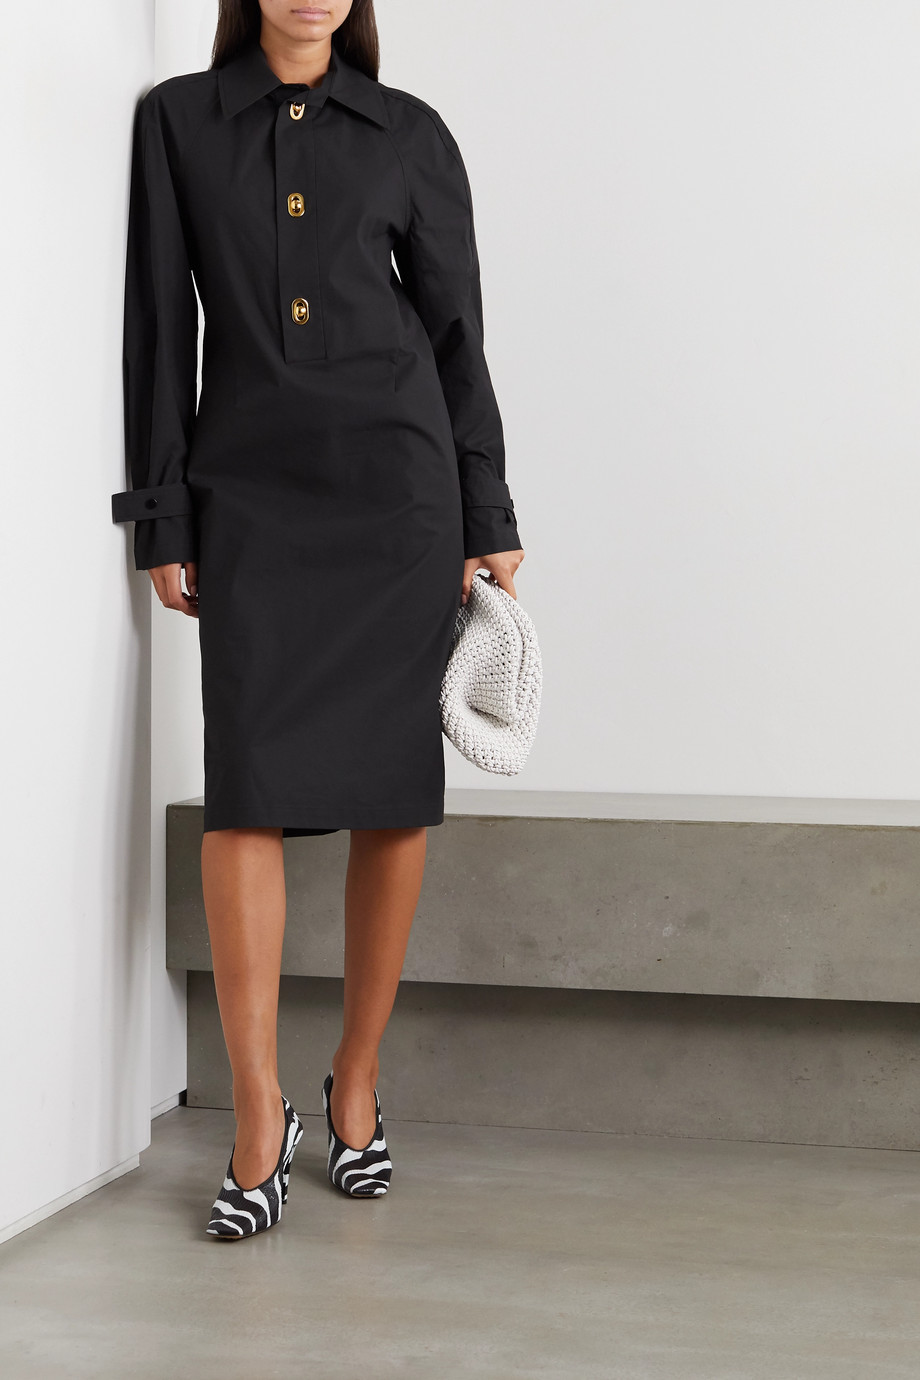 Bottega Veneta Coated-cotton dress